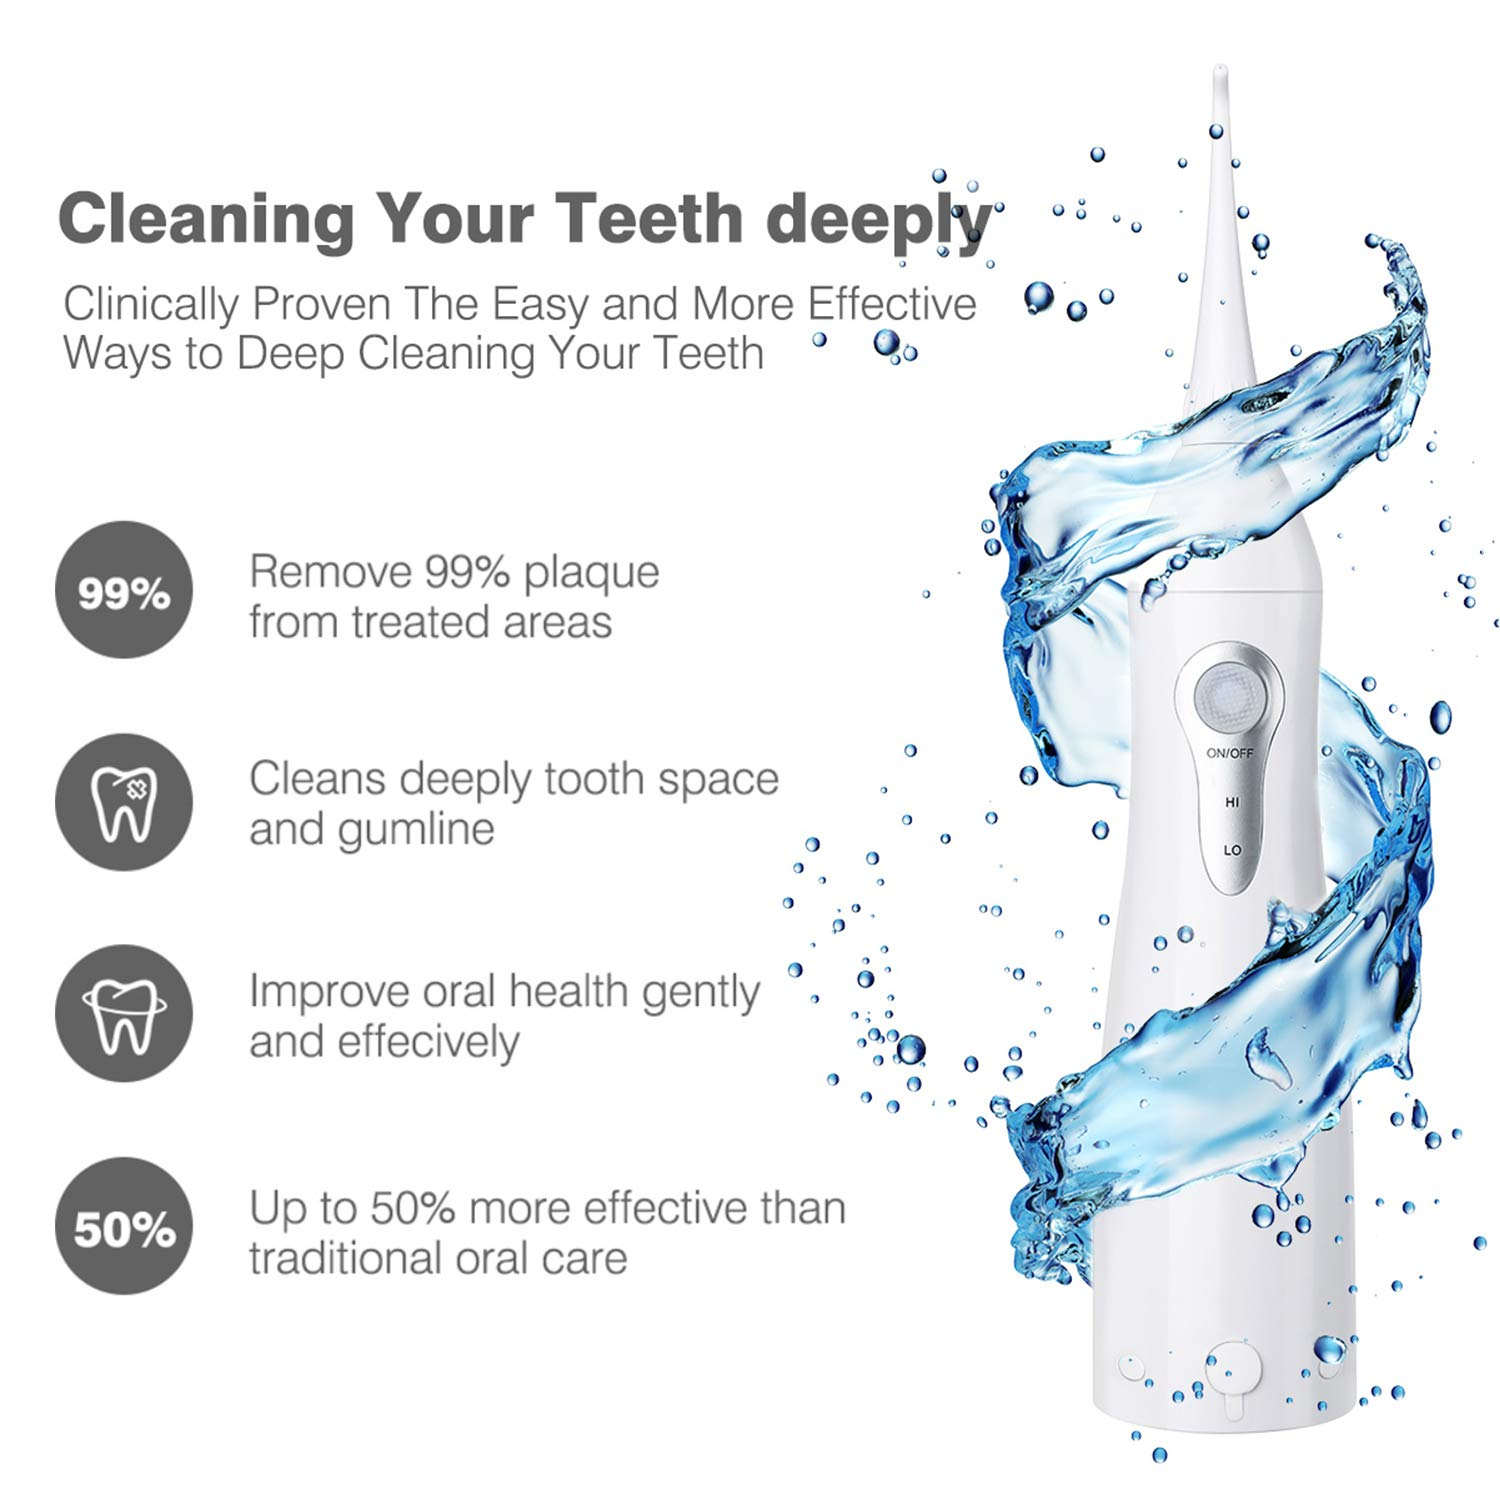 Cordless Water Flosser Oral Irrigator, Power Dental Flosser Portable Water Flosser for Teeth Cleaner with Replacement Tips for Travel and Home